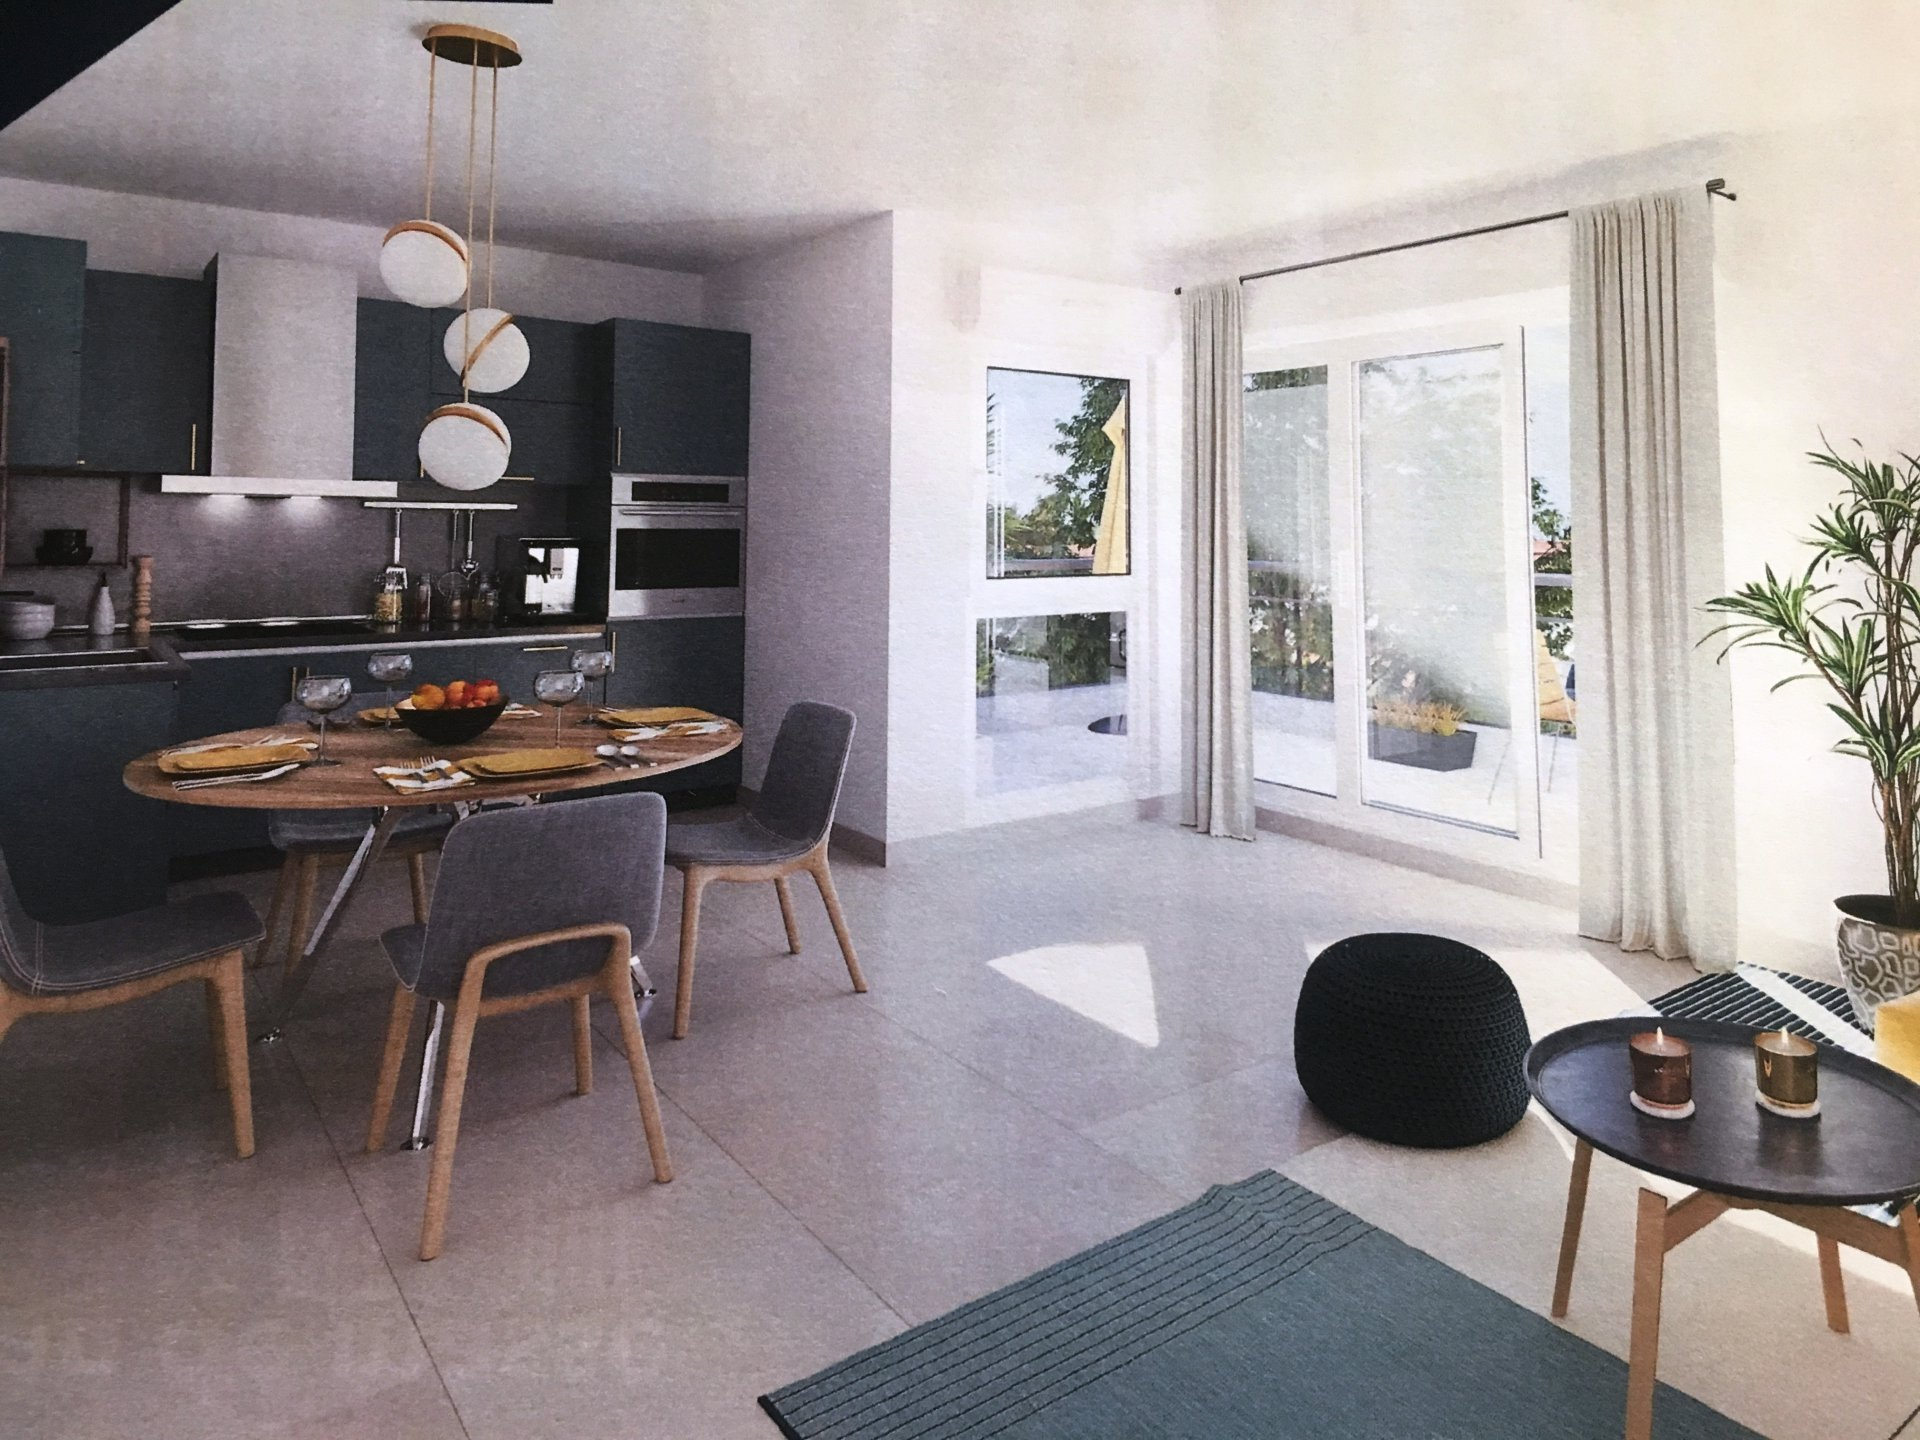 A VENDRE APPARTEMENT NEUF MARSEILLE